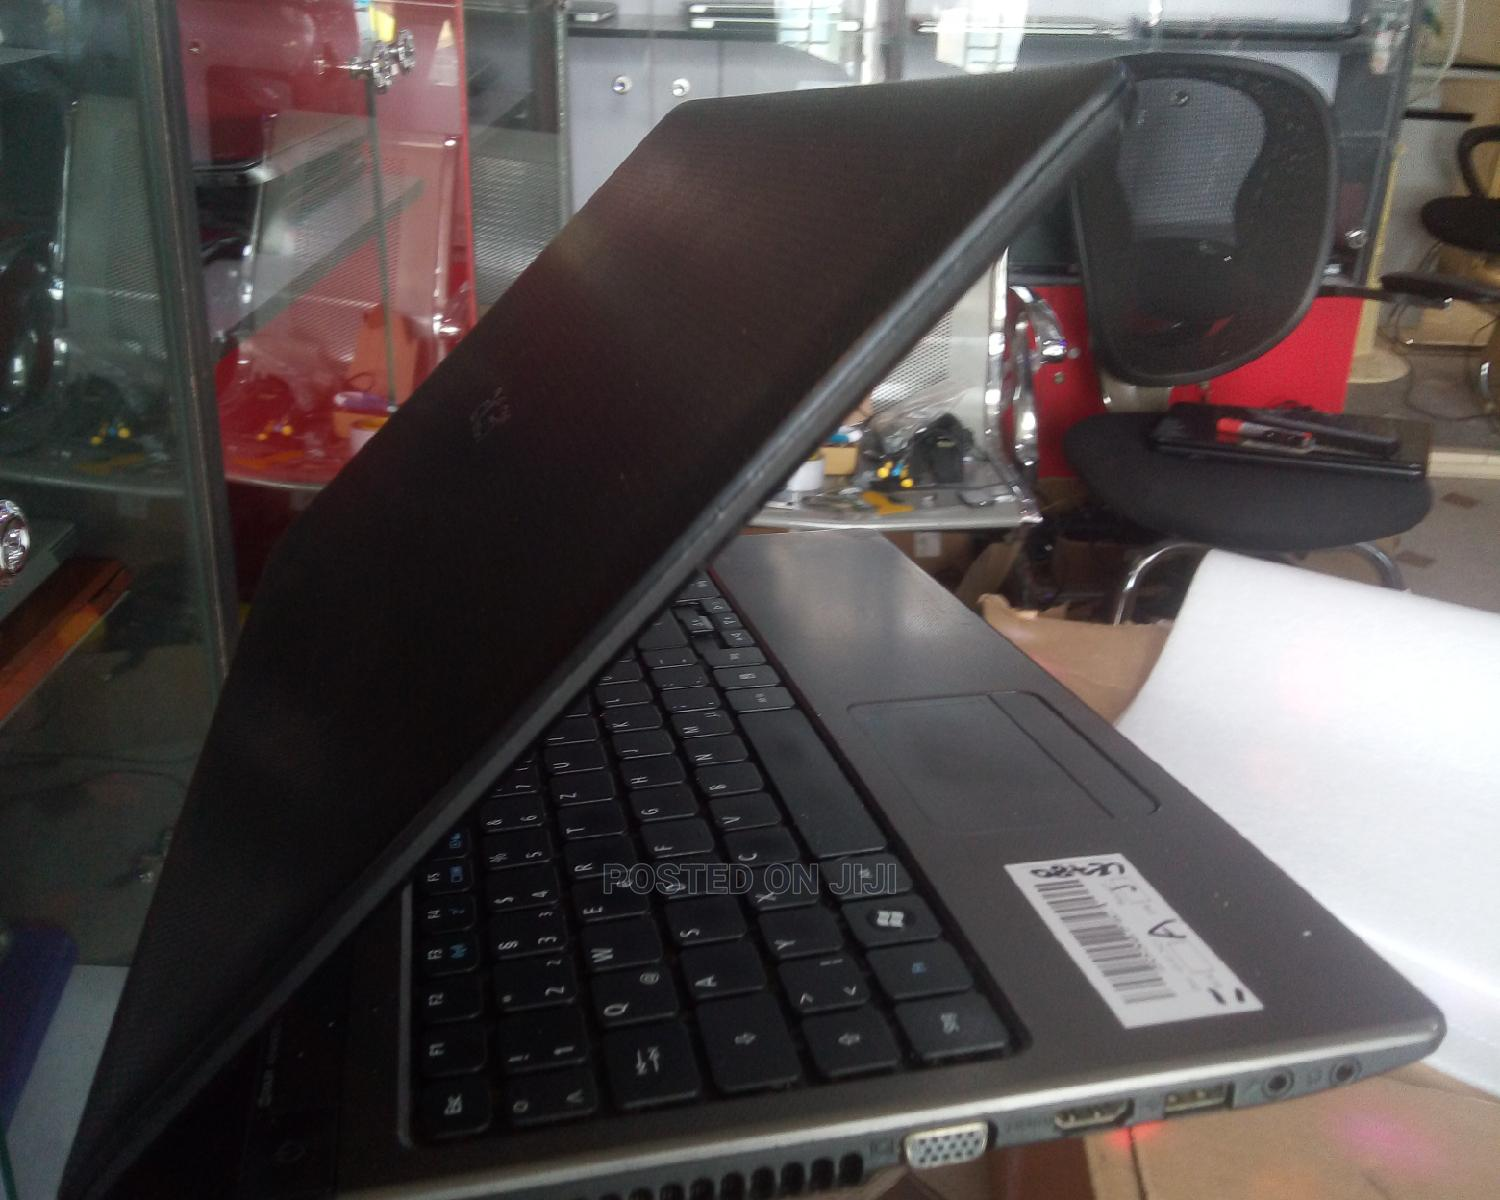 Laptop Acer Aspire 5750G 4GB Intel Core I5 HDD 500GB | Laptops & Computers for sale in Alimosho, Lagos State, Nigeria